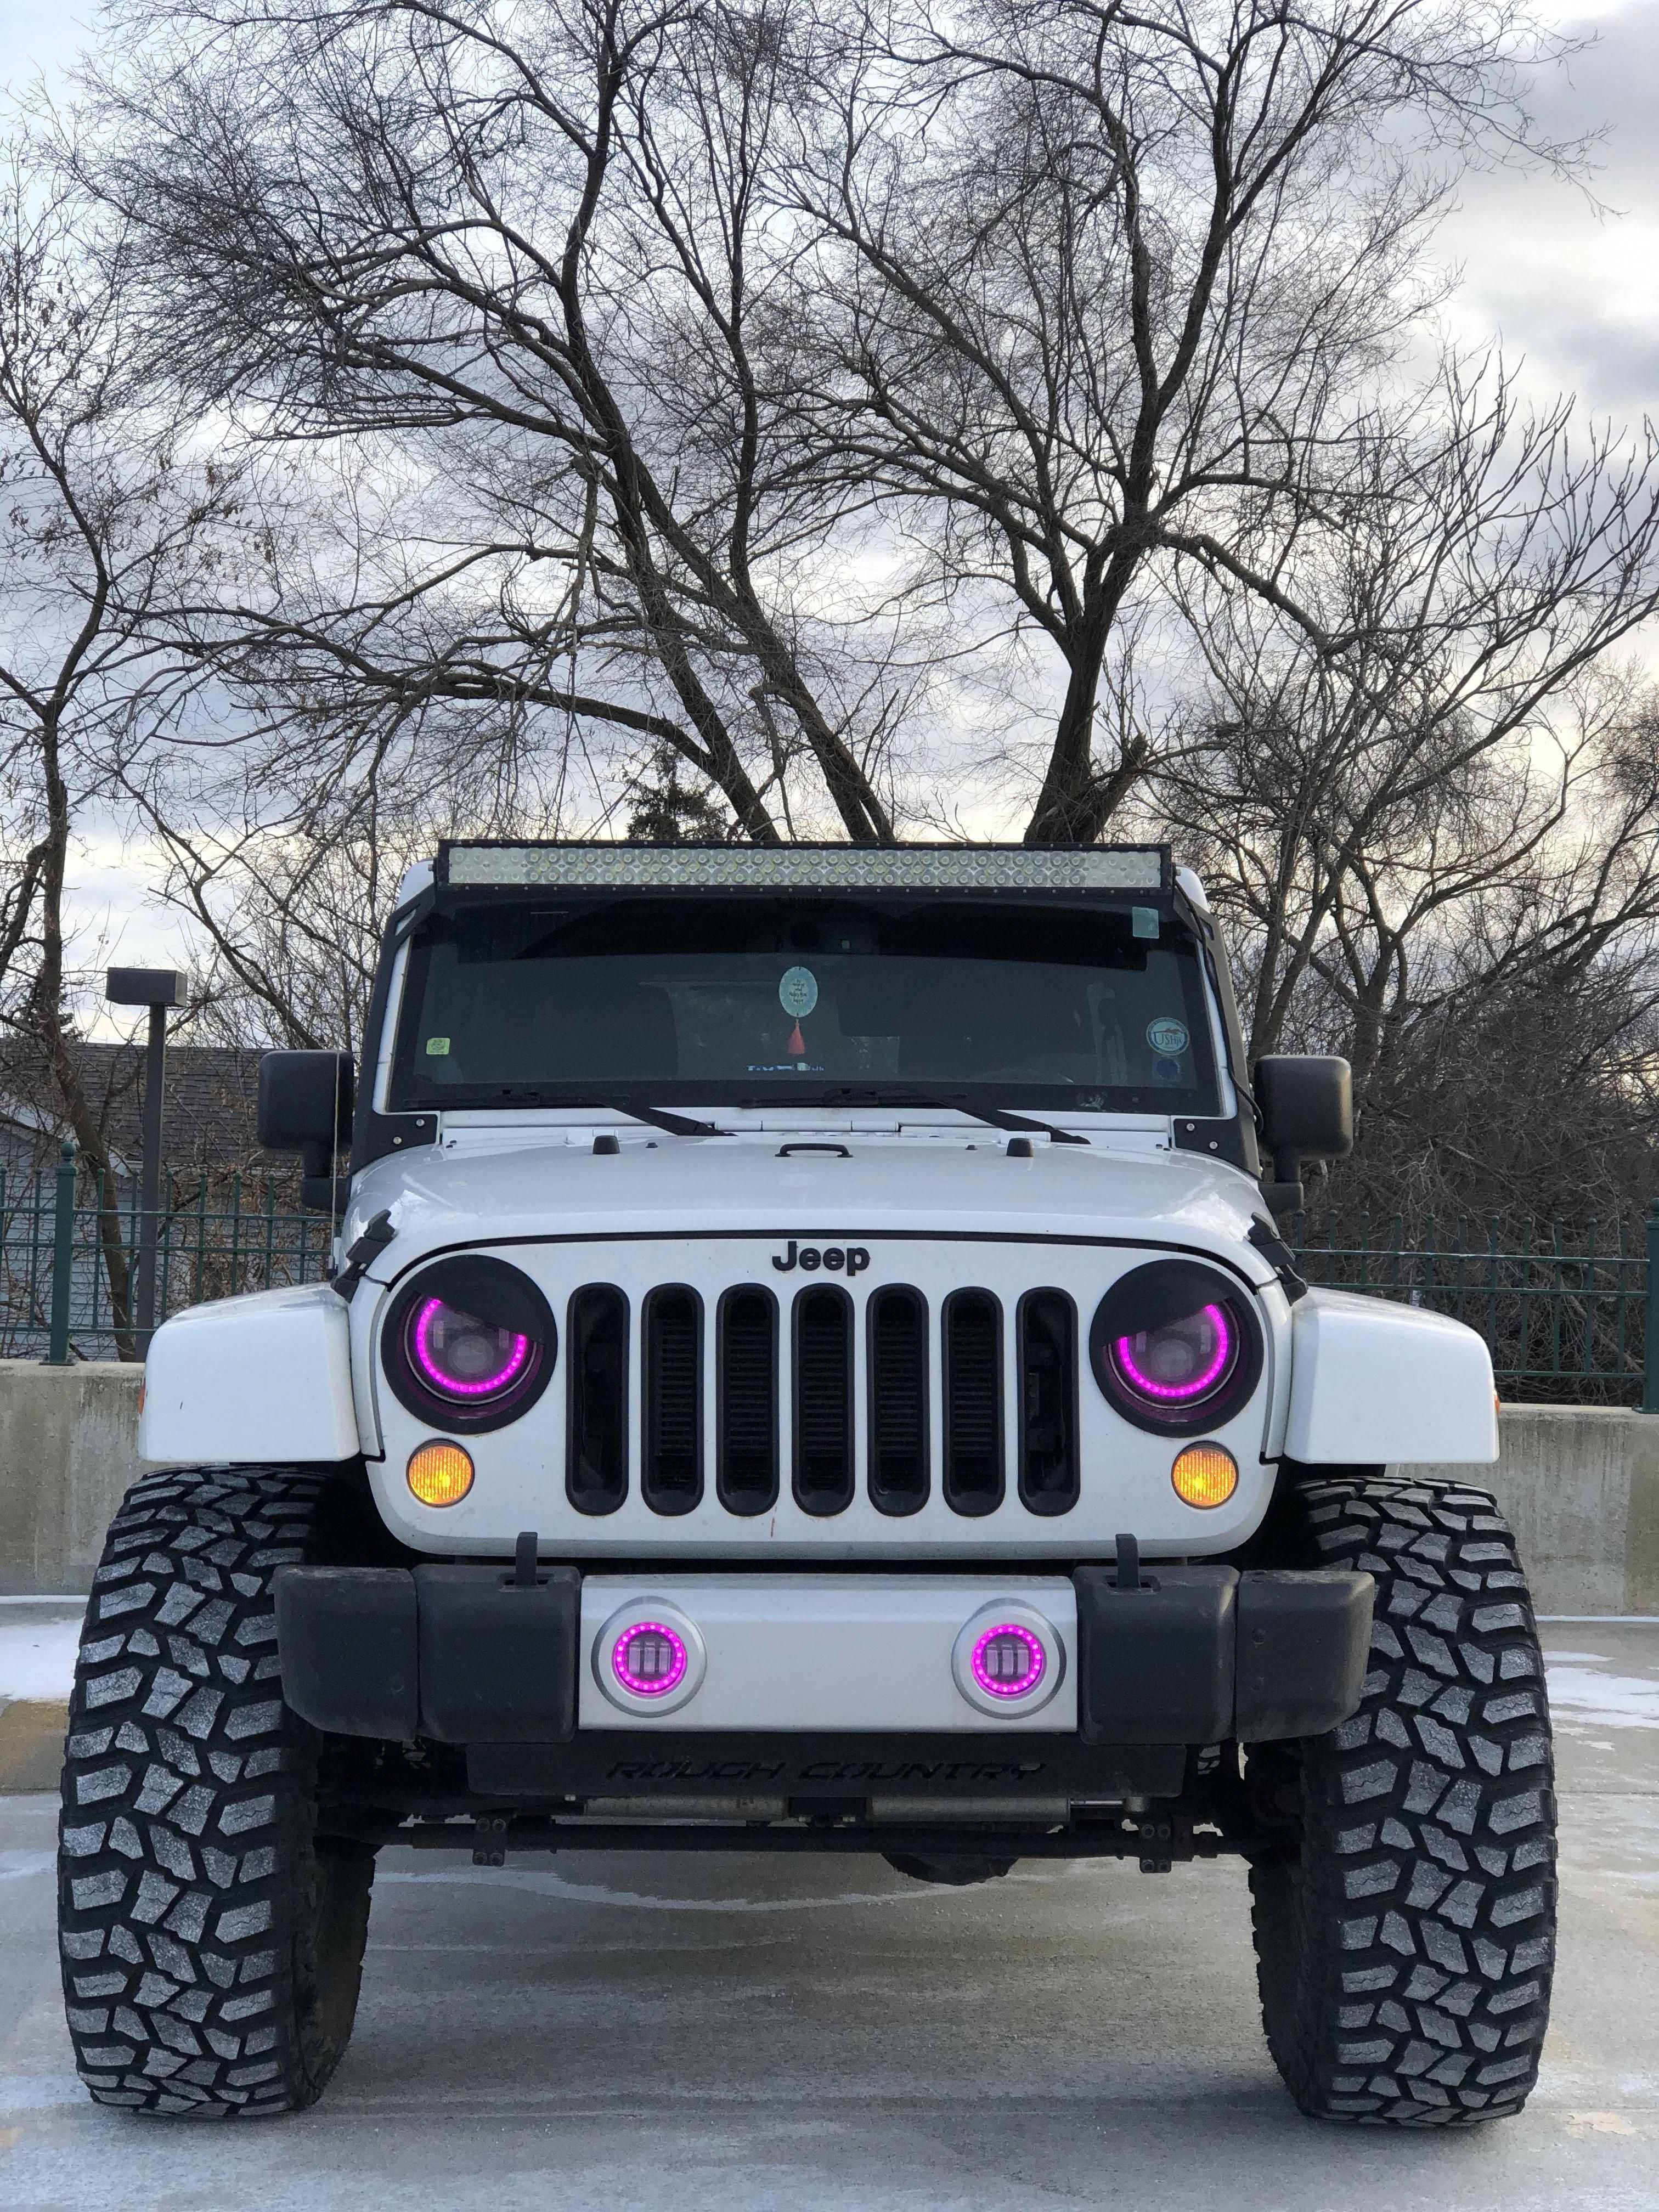 Pin By Brylee Fanning On Jeeps In 2020 Jacked Up Trucks Jacked Up Chevy Trucks